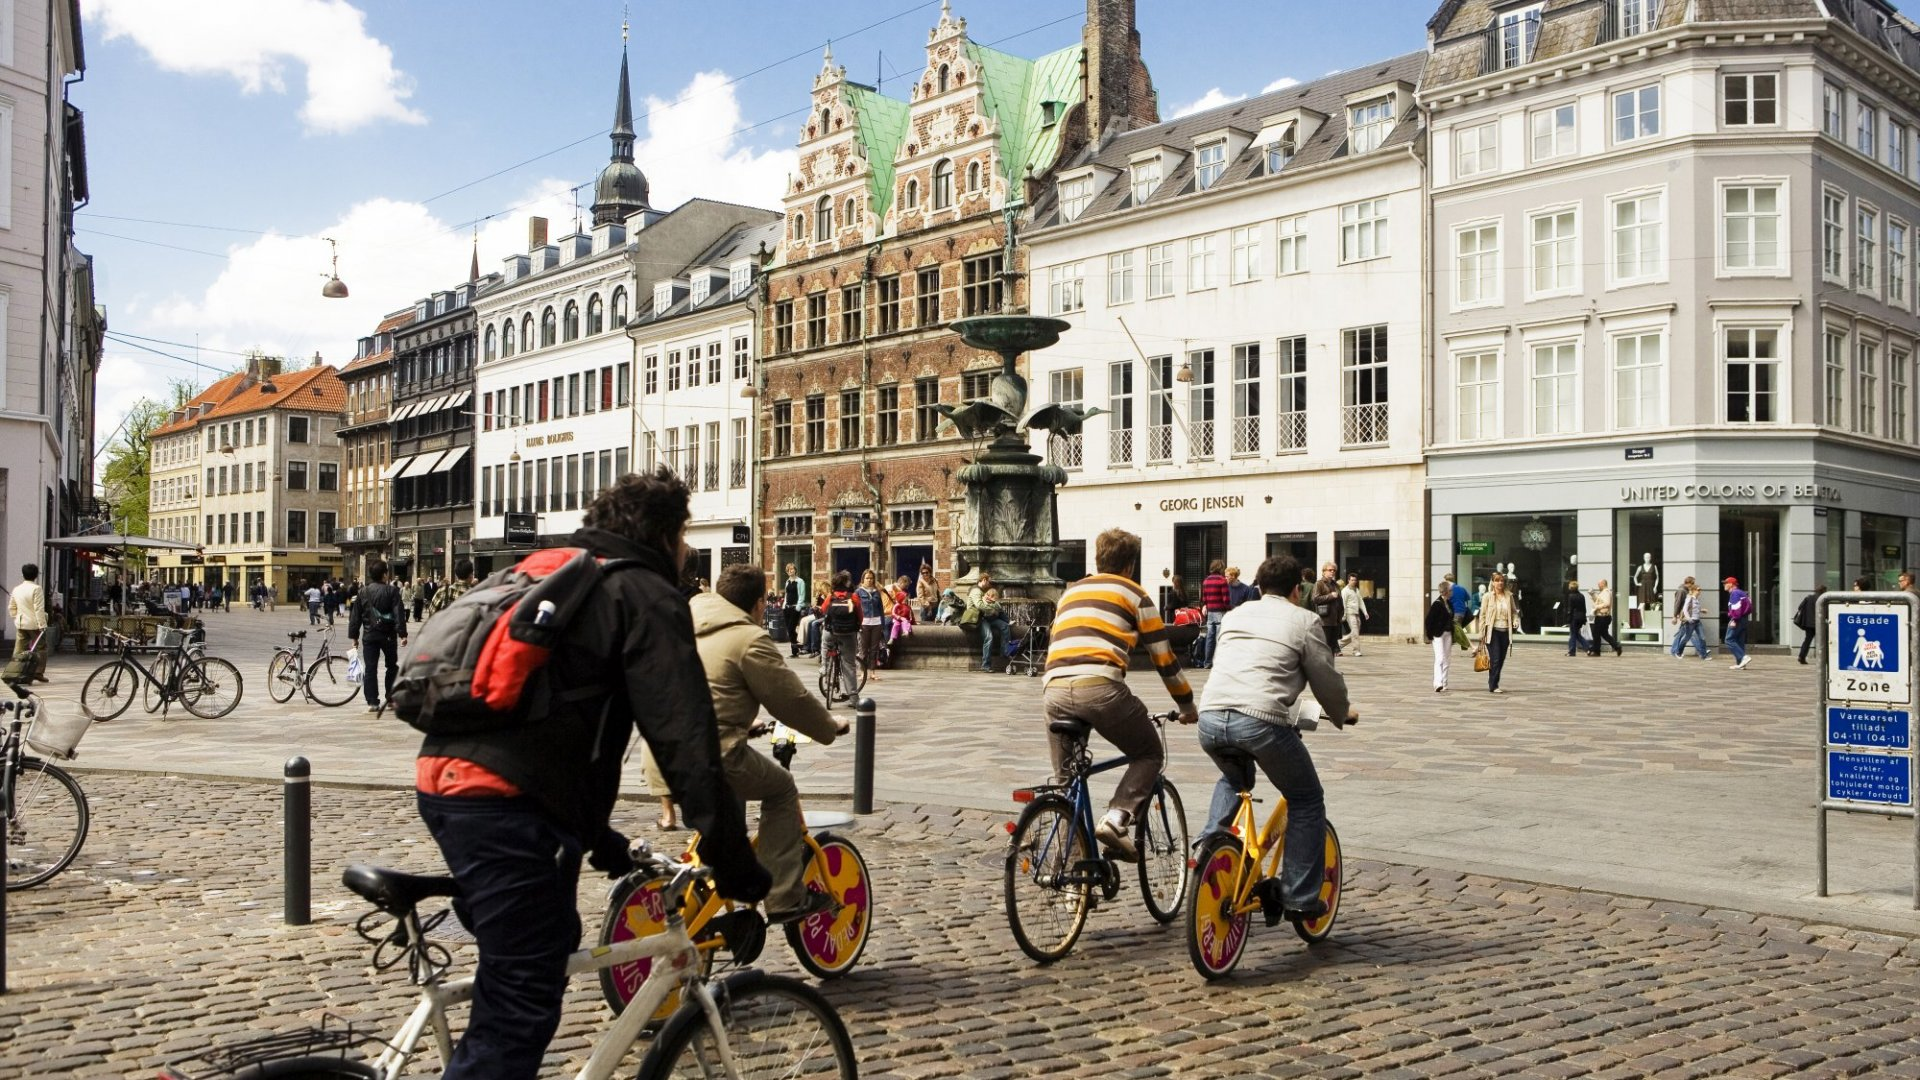 Copenhagen is Driving Growth While Going Carbon Neutral